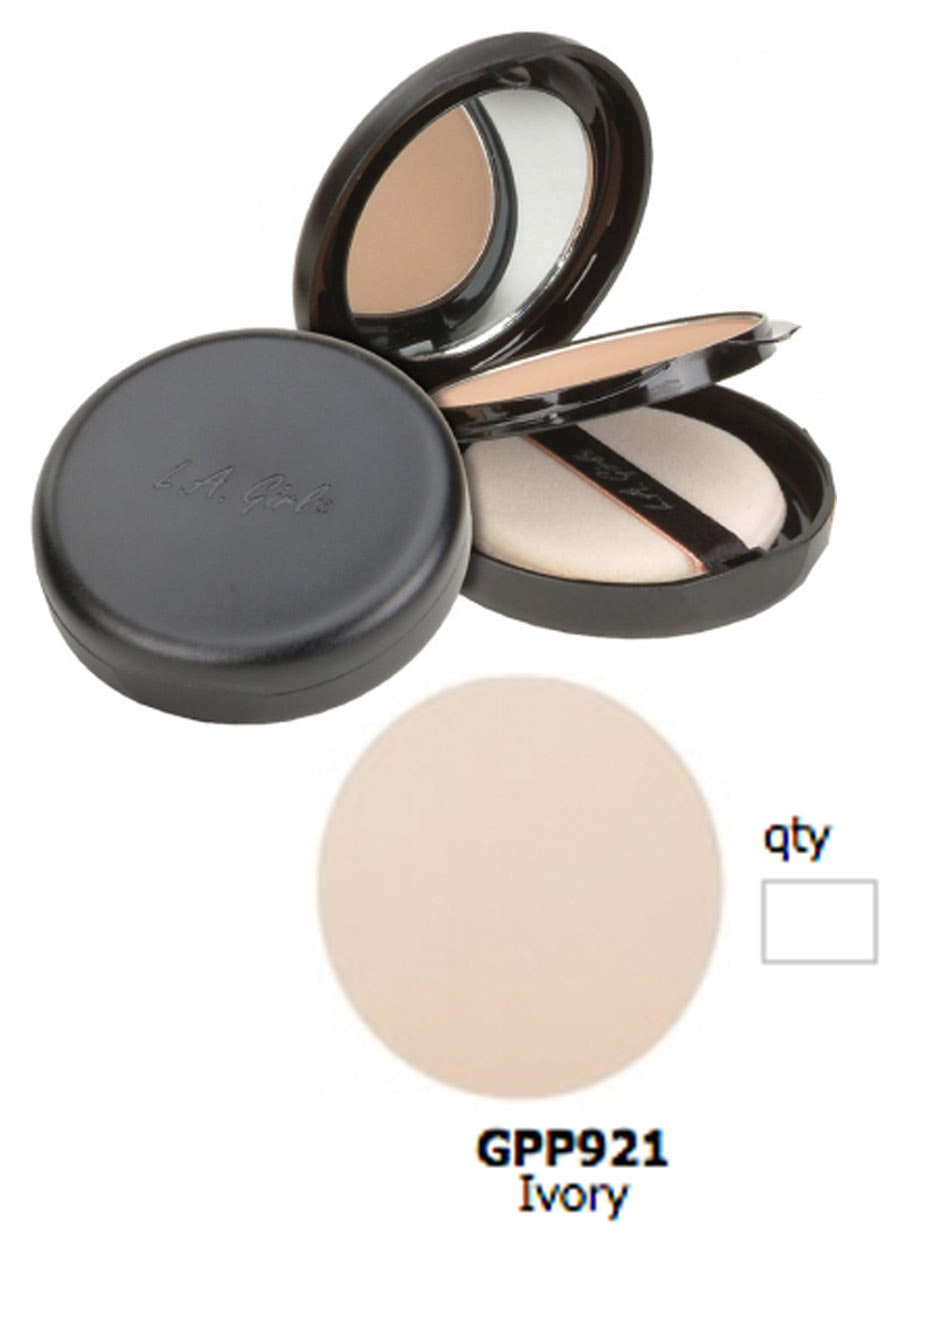 LA Girl Ultimate Pressed Powder - Ivory